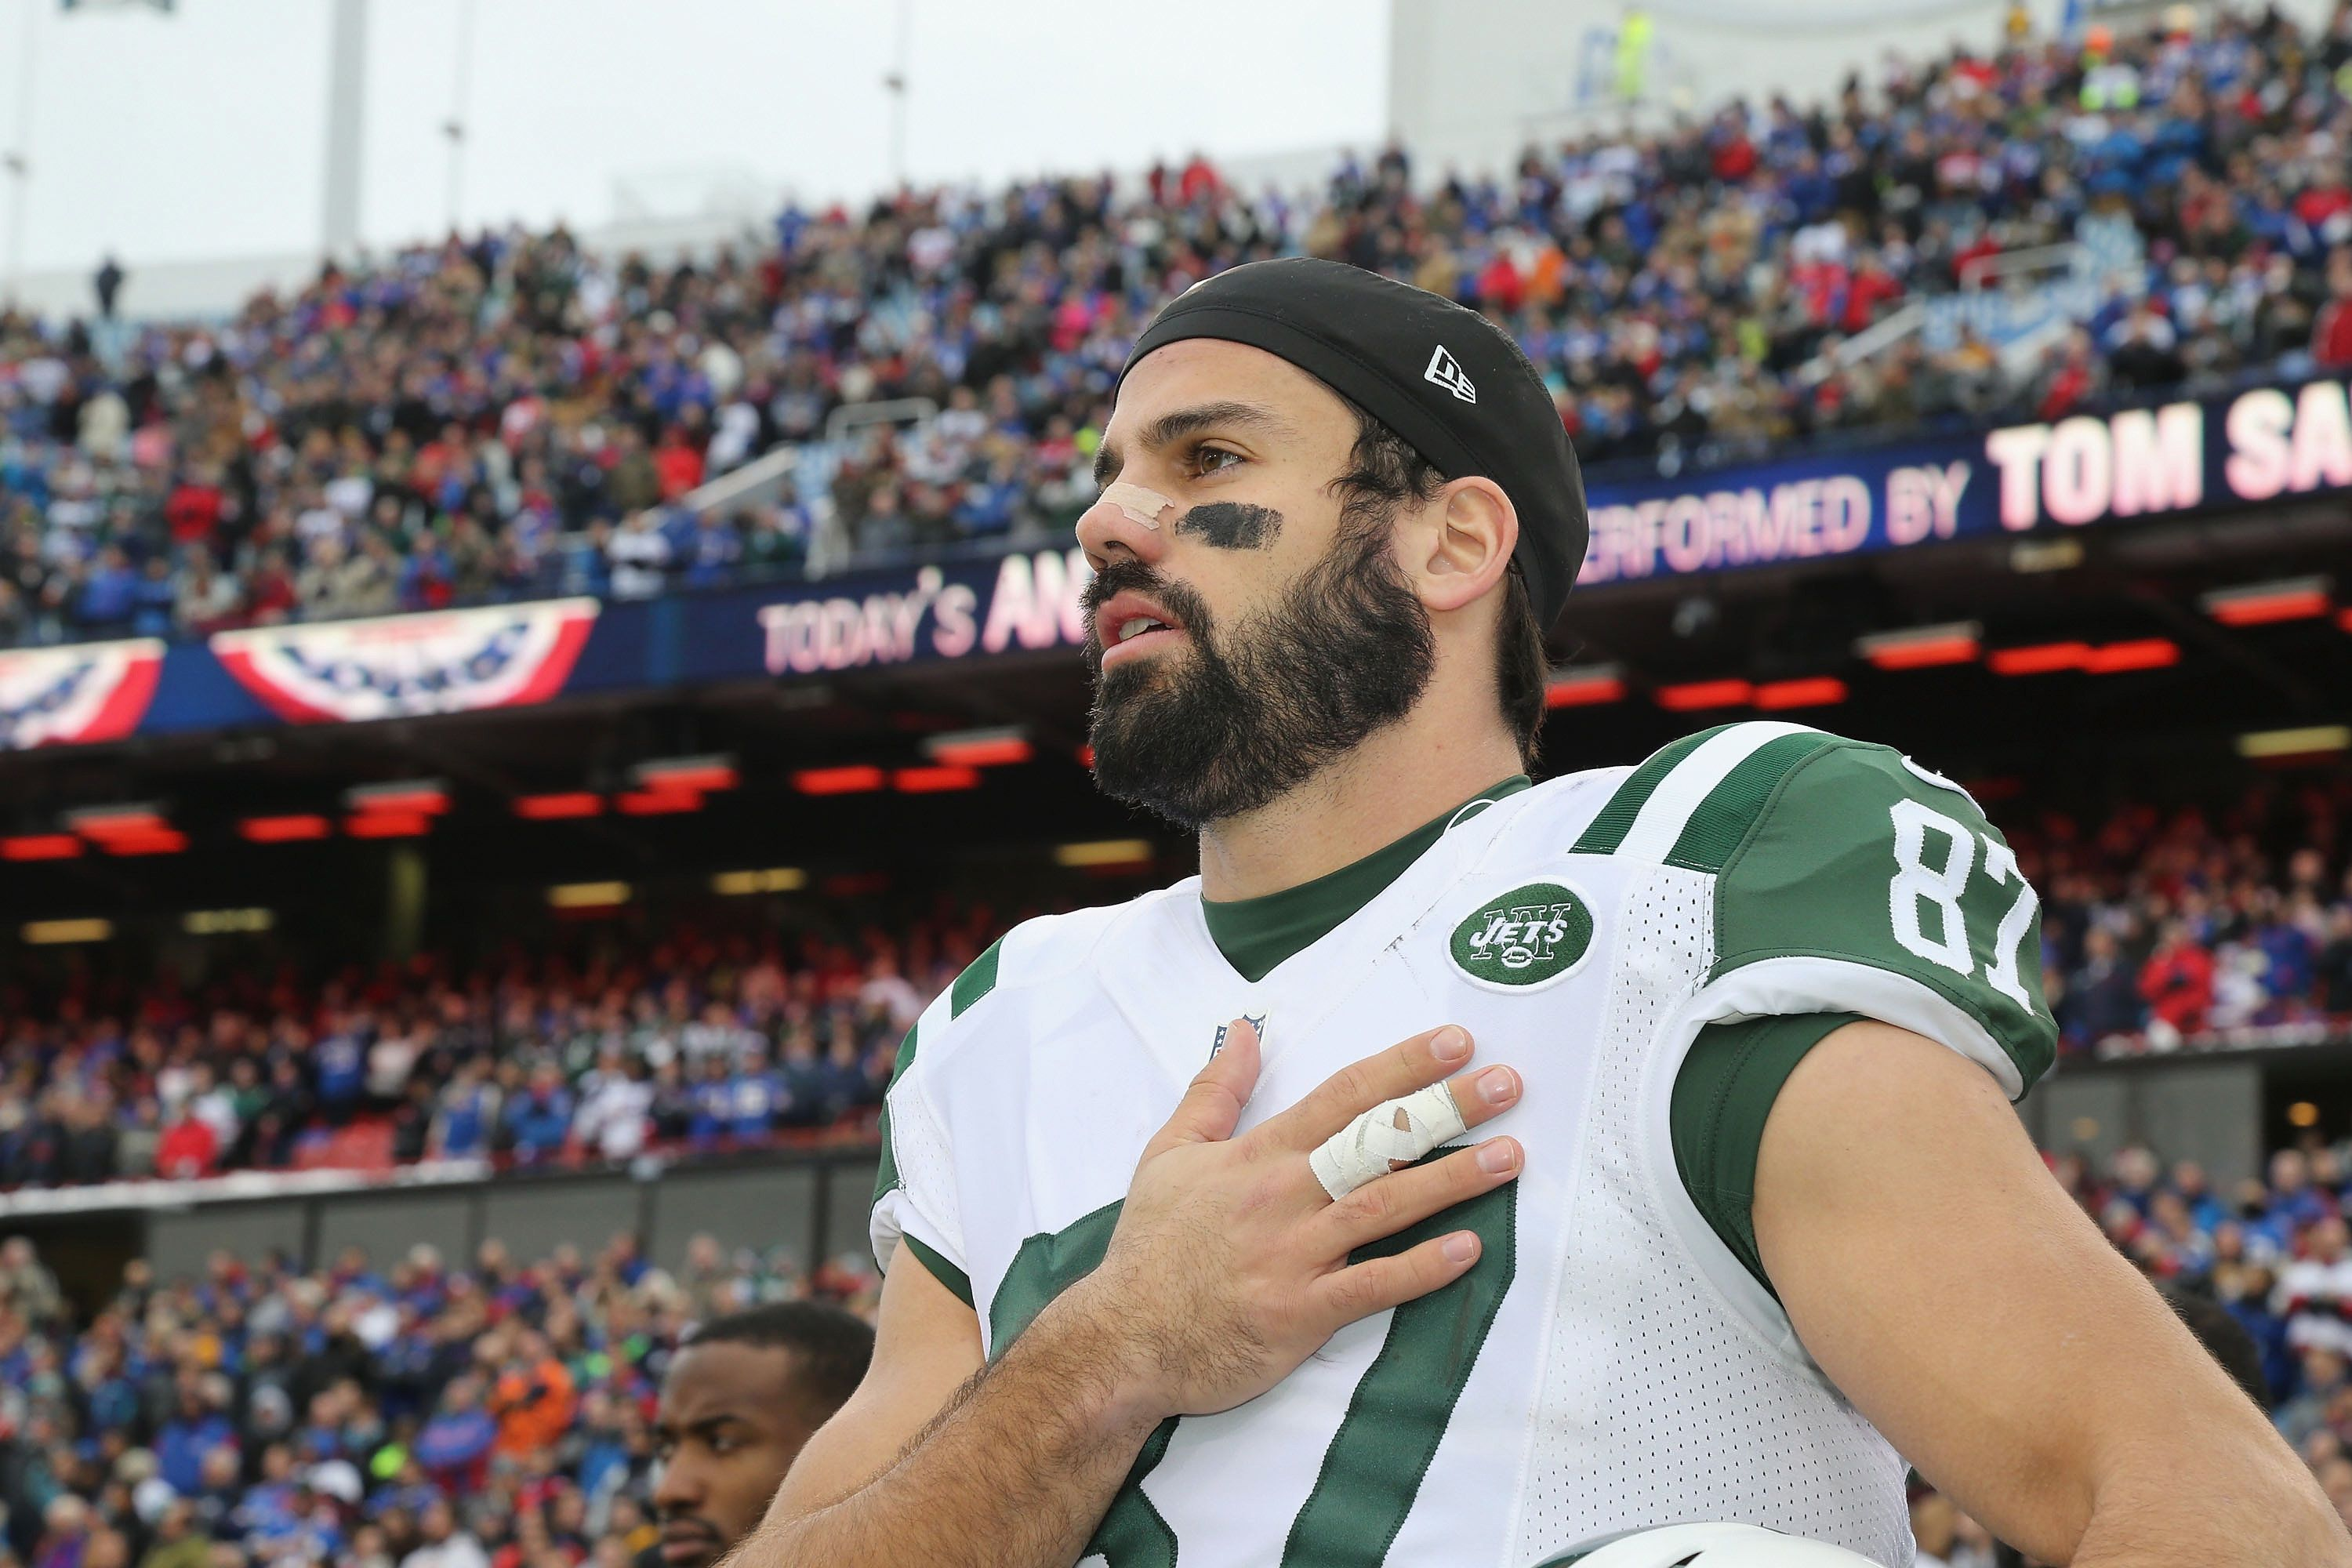 Jets receiver Eric Decker, 29, has amassed three 1,000-yard seasons in the past four years.